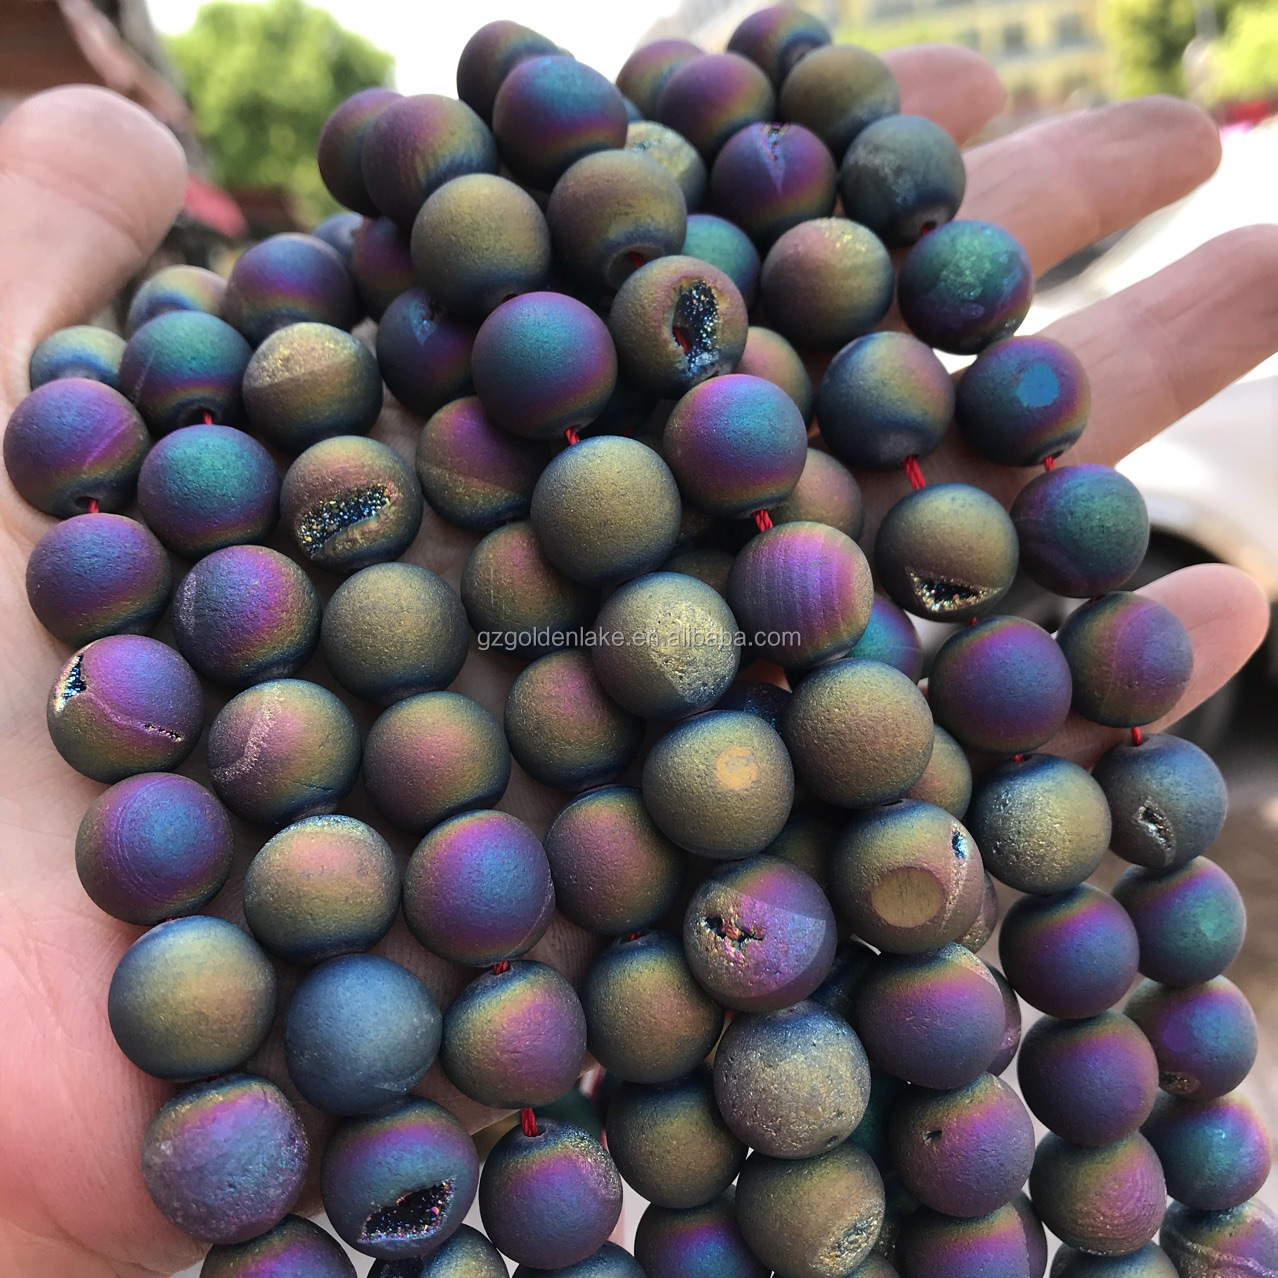 Natural Druzy Agate Beads Geode Quartz Plated Drusy Round Ball Beads